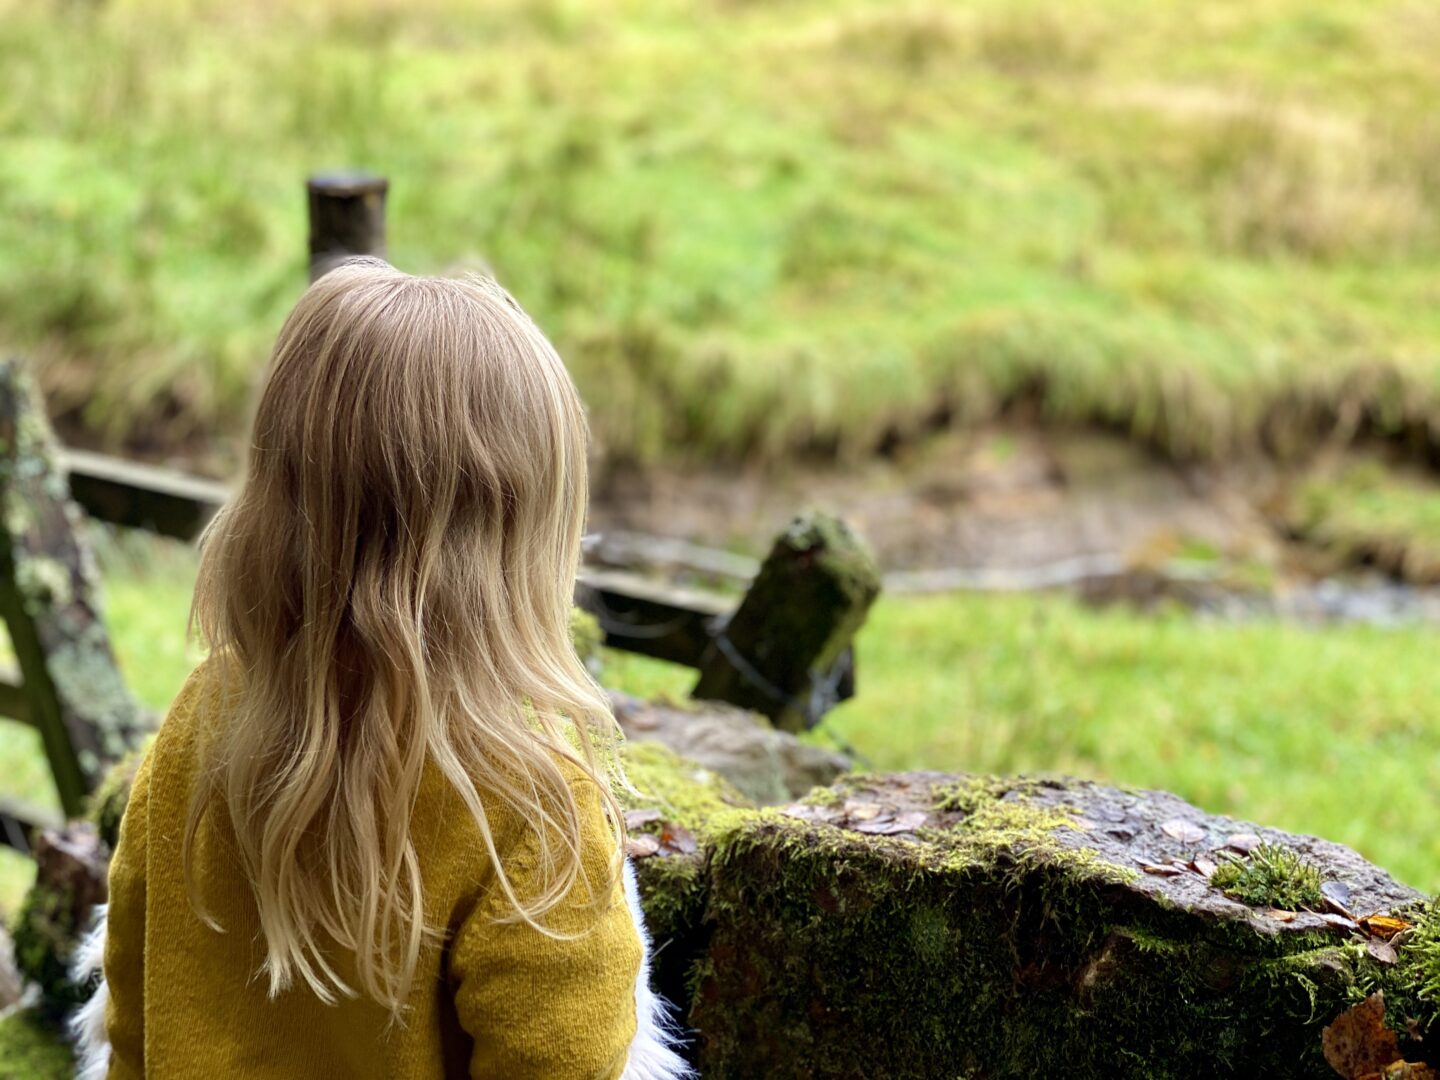 Girl looking at fields